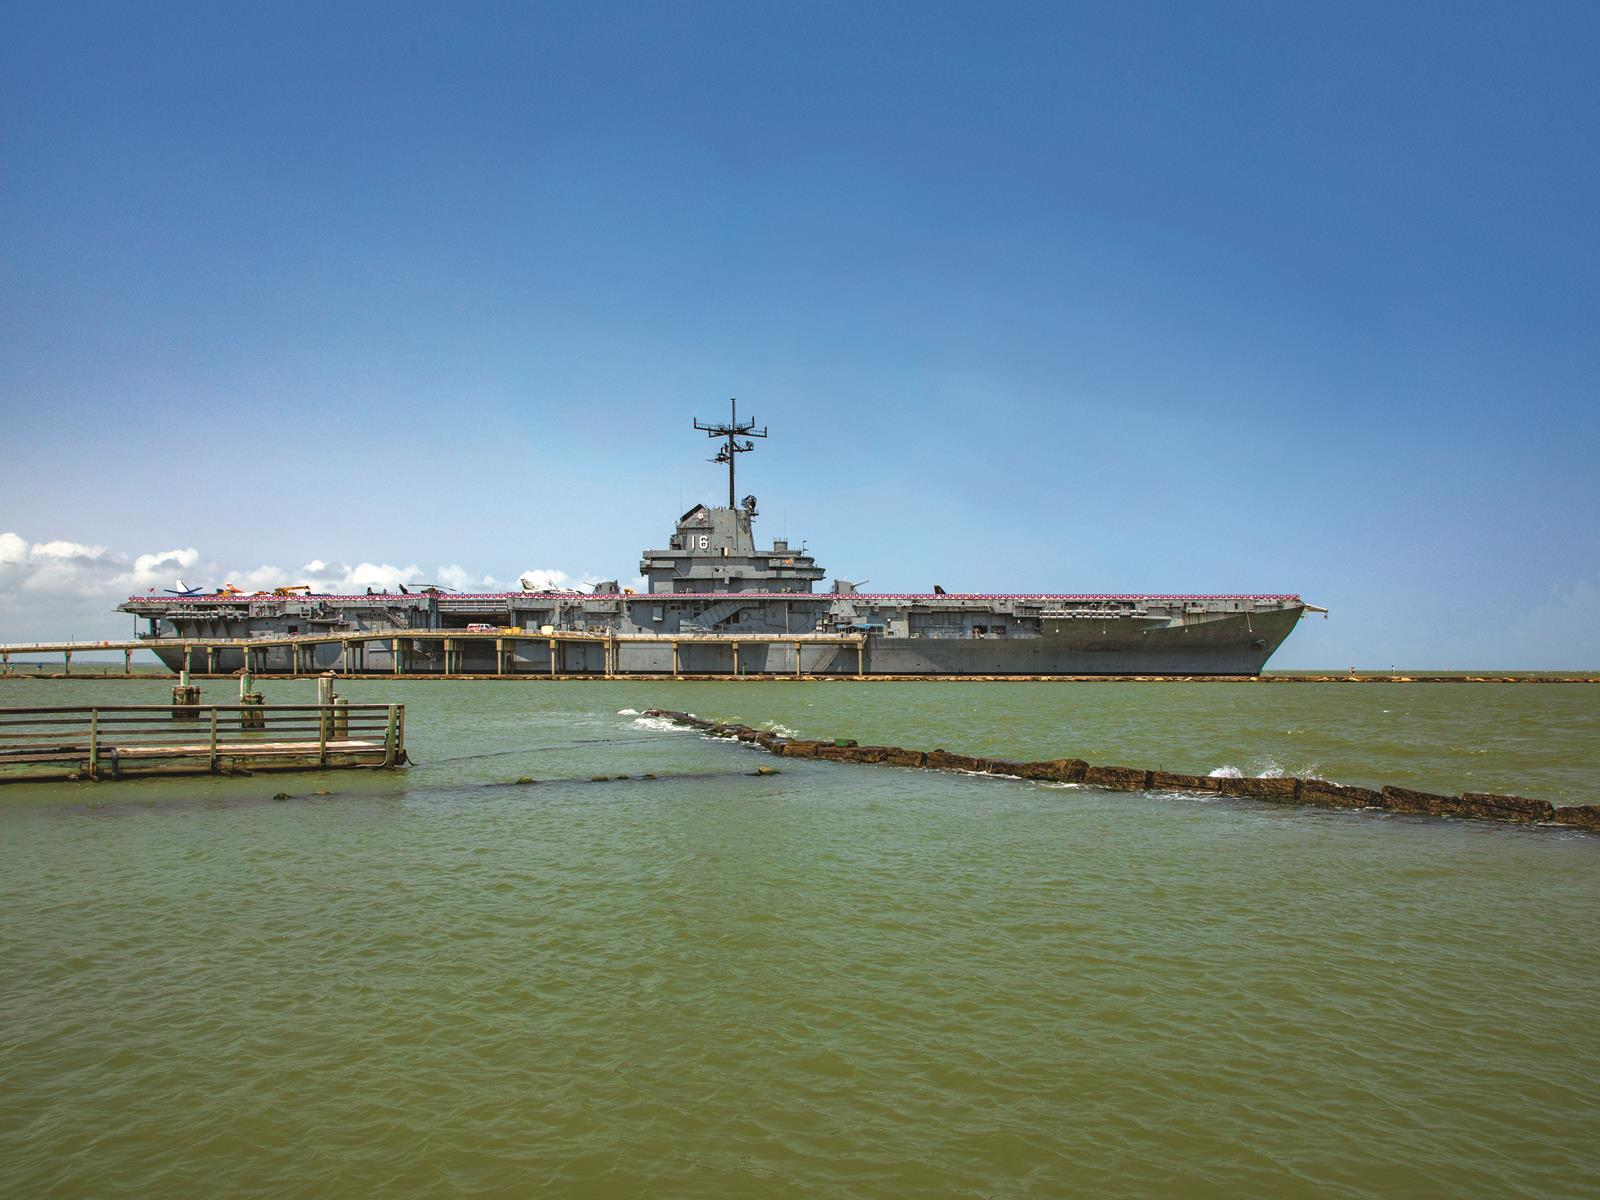 Much of the movie Pearl Harbor was filmed at the USS Lexington Museum on the Bay in Corpus Christi.